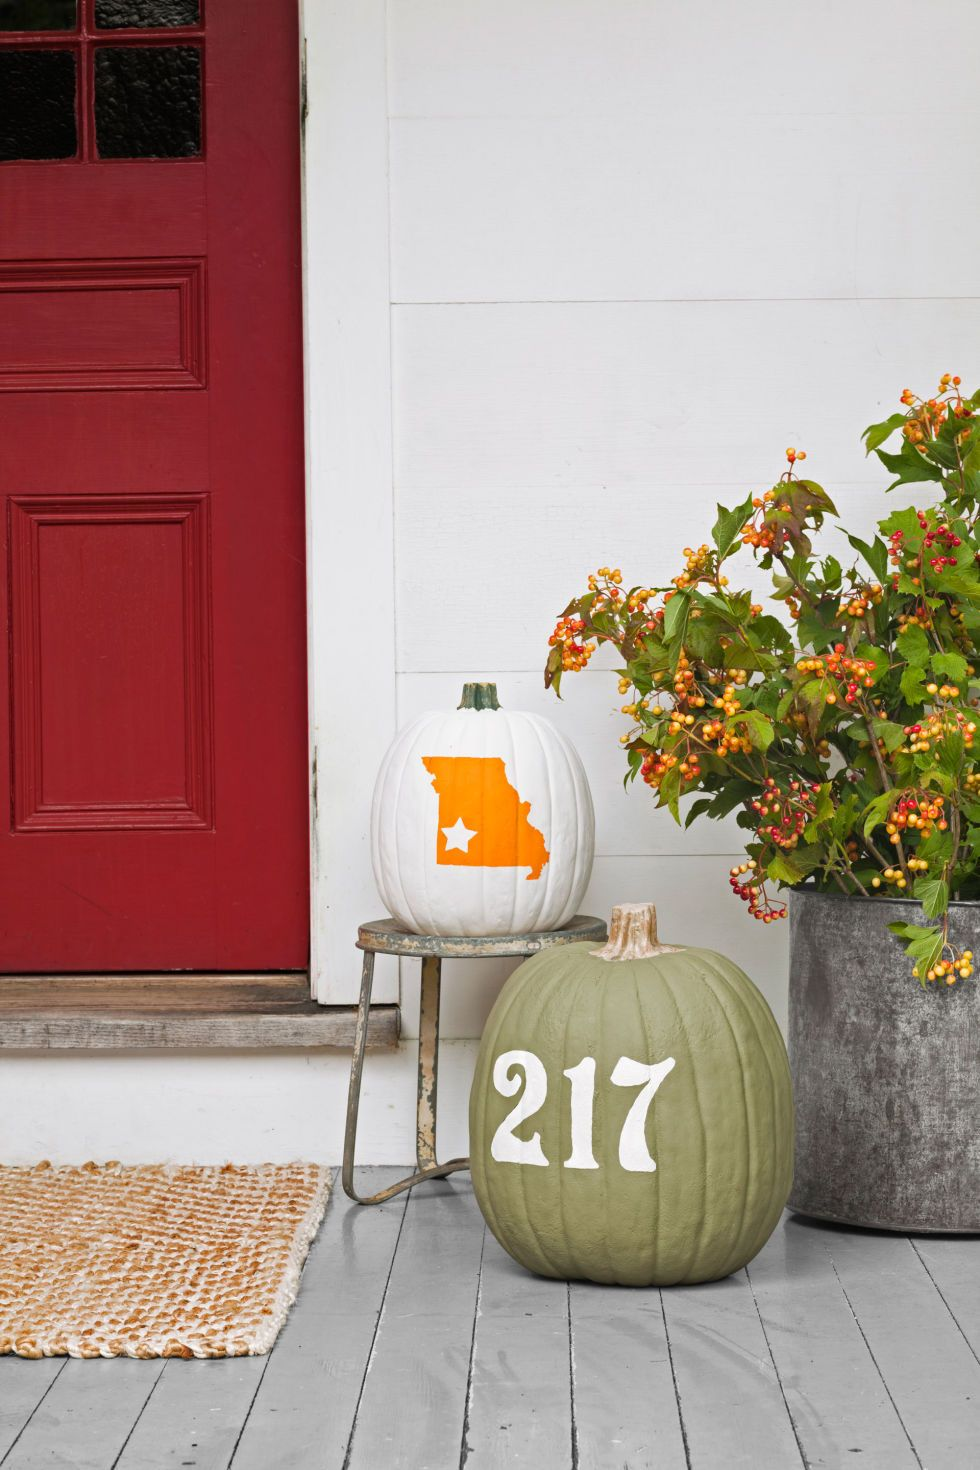 25 Creative Ways to Decorate Your Home With Pumpkins This Fall ...